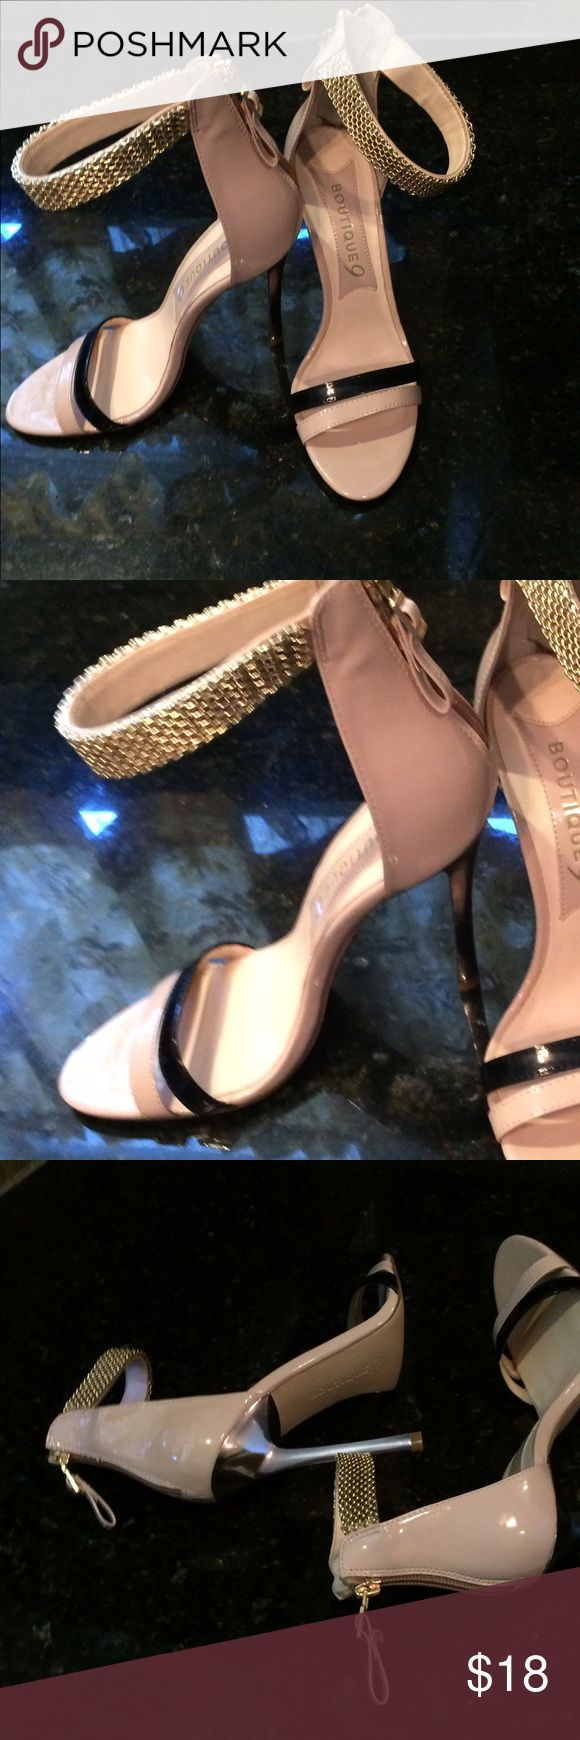 Ankle strap heels Gold 4 1/2 heel sandal shoe. Back zipper taupe and black patent leather, gold strap. Beautiful with a gown. Excellent condition. Boutique 9 Shoes Heels